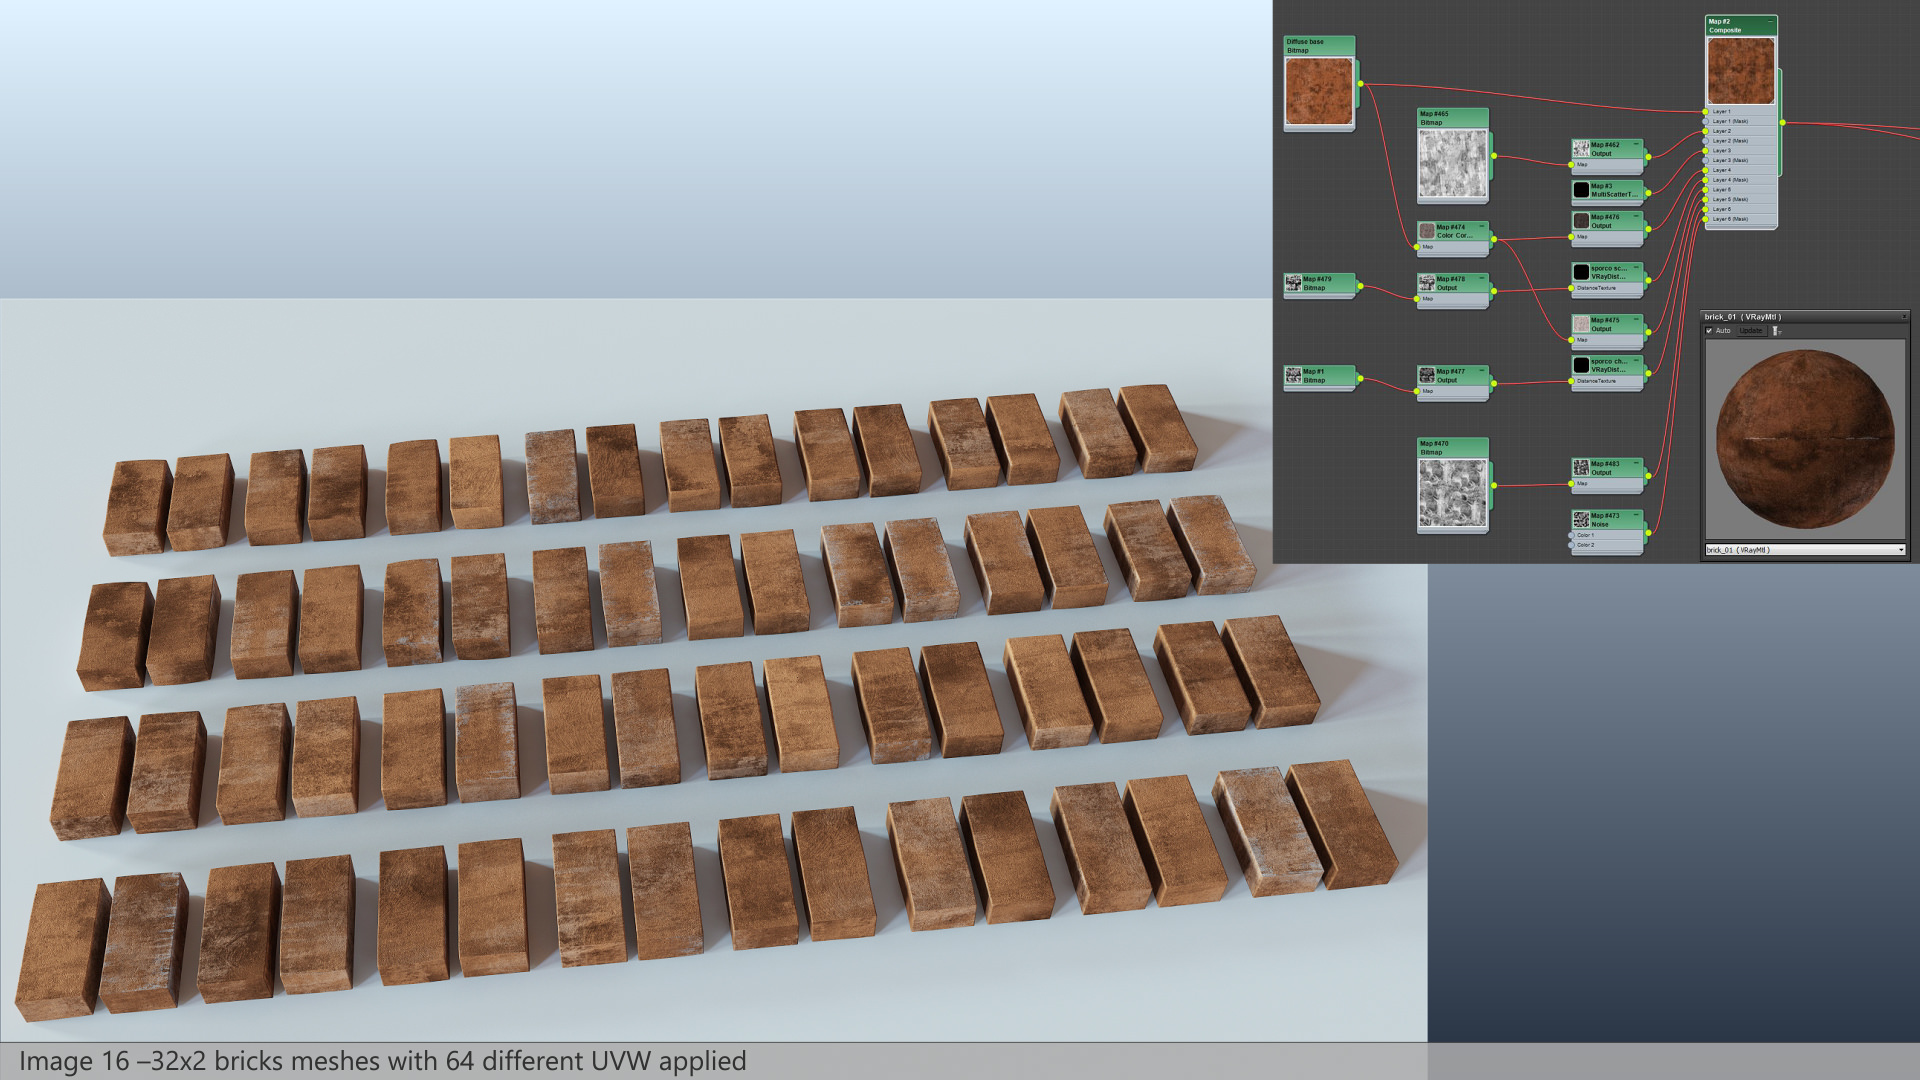 Termitary House - 32x2 bricks meshes with 64 different UVW applied